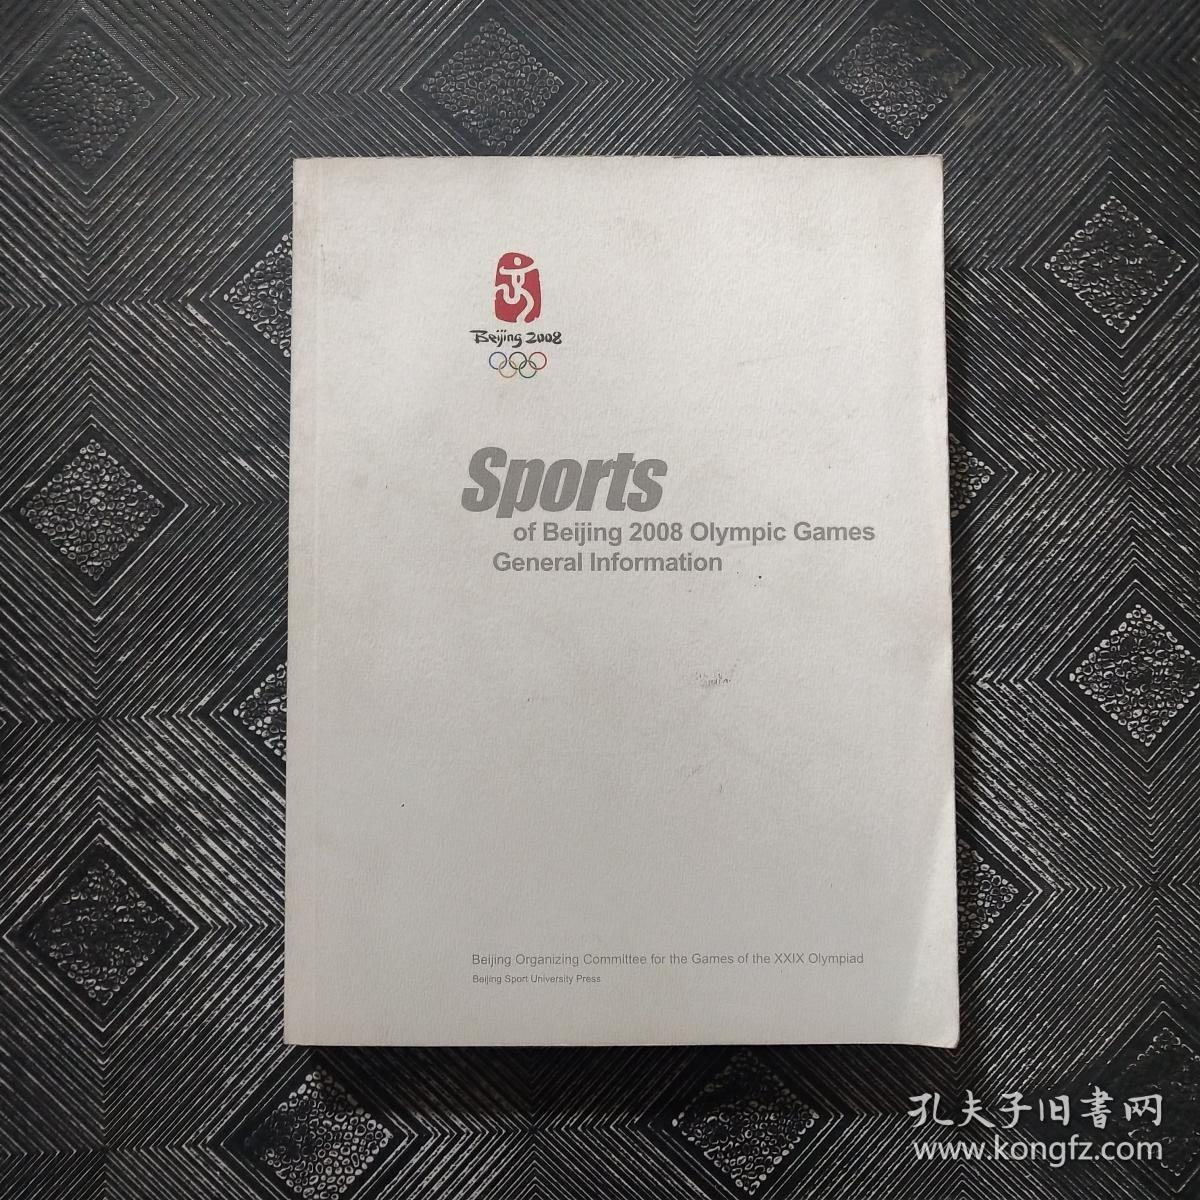 SPORTS OF BEIJING 2008 OLYMPIC GAMES GENERAL INFORMATION